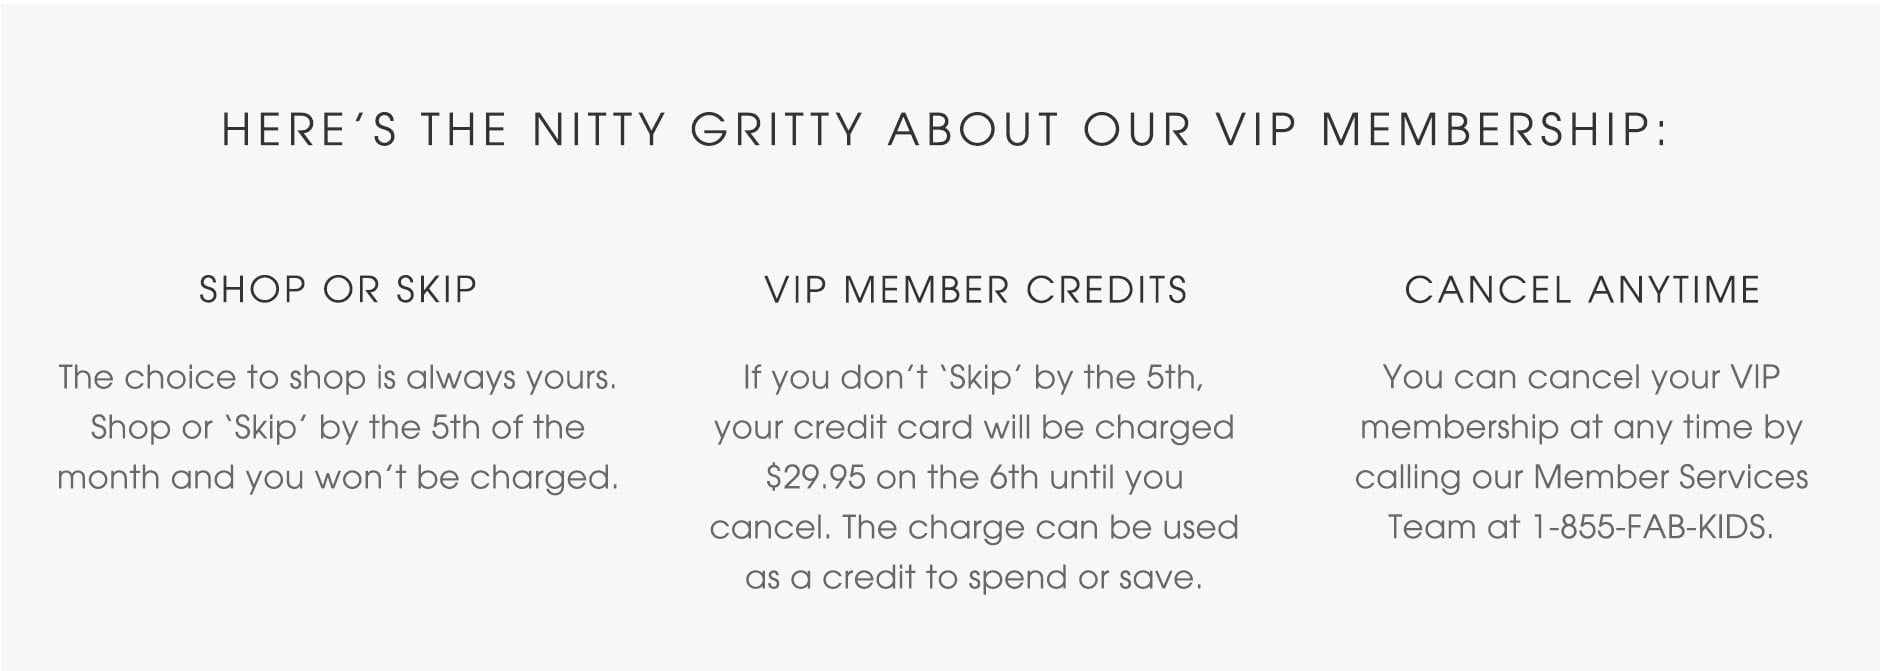 Here's the nitty gritty about our VIP membership